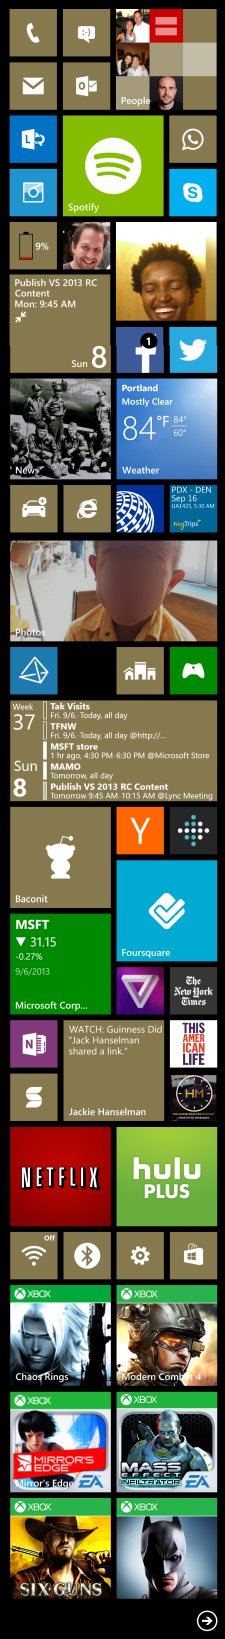 My current Lumia 1010 tile layout